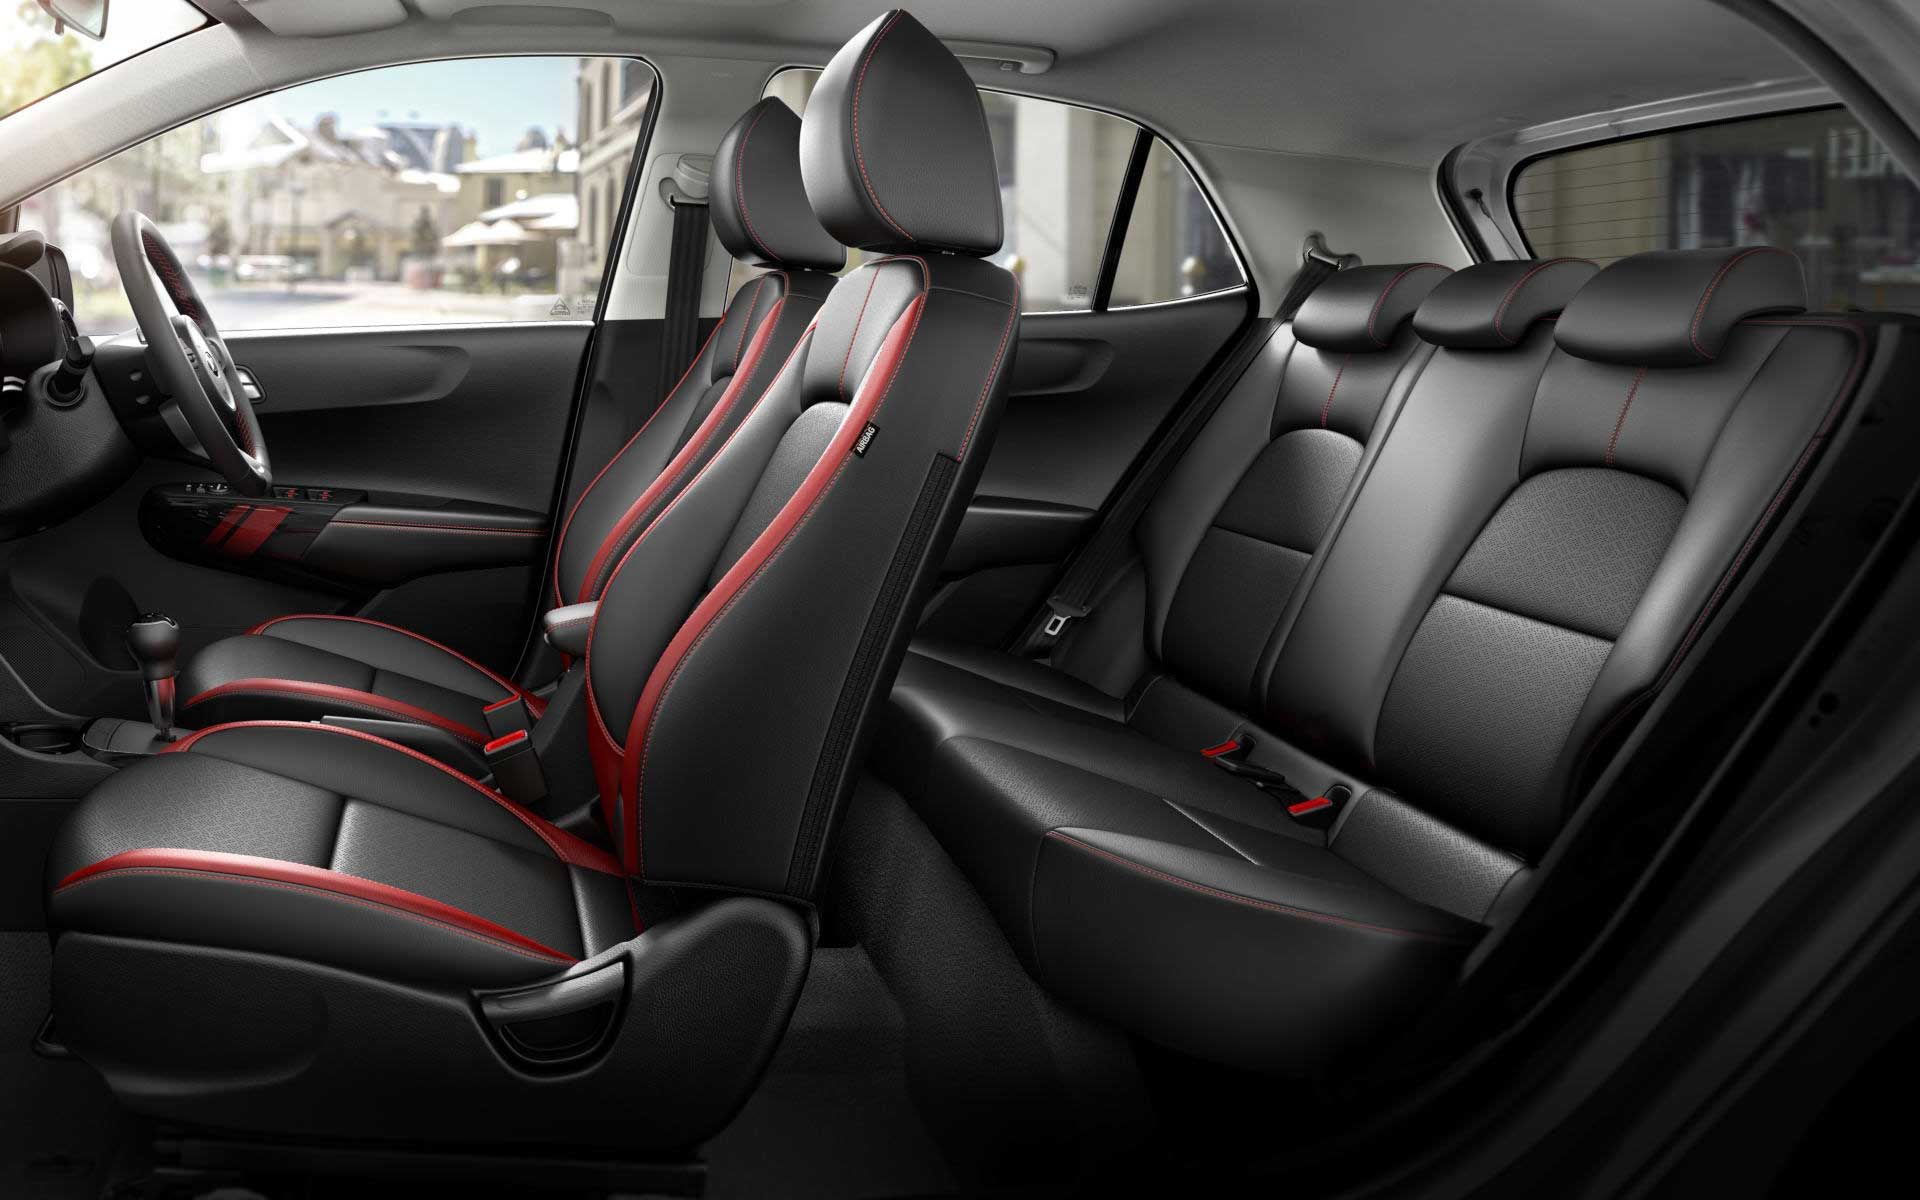 kia picanto interior seating